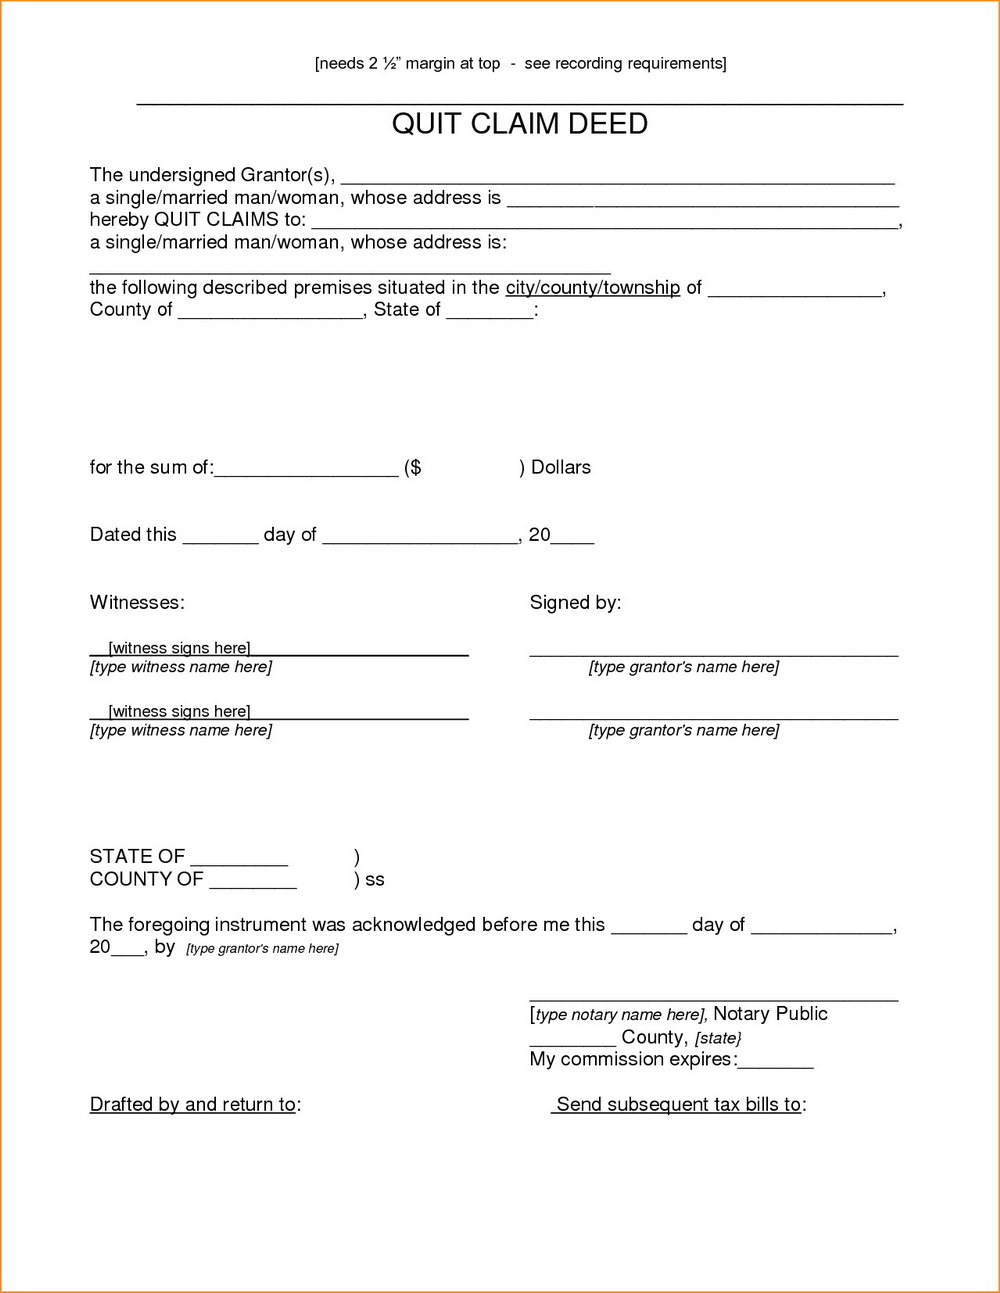 Quit Claim Deed Form Pasco County Florida